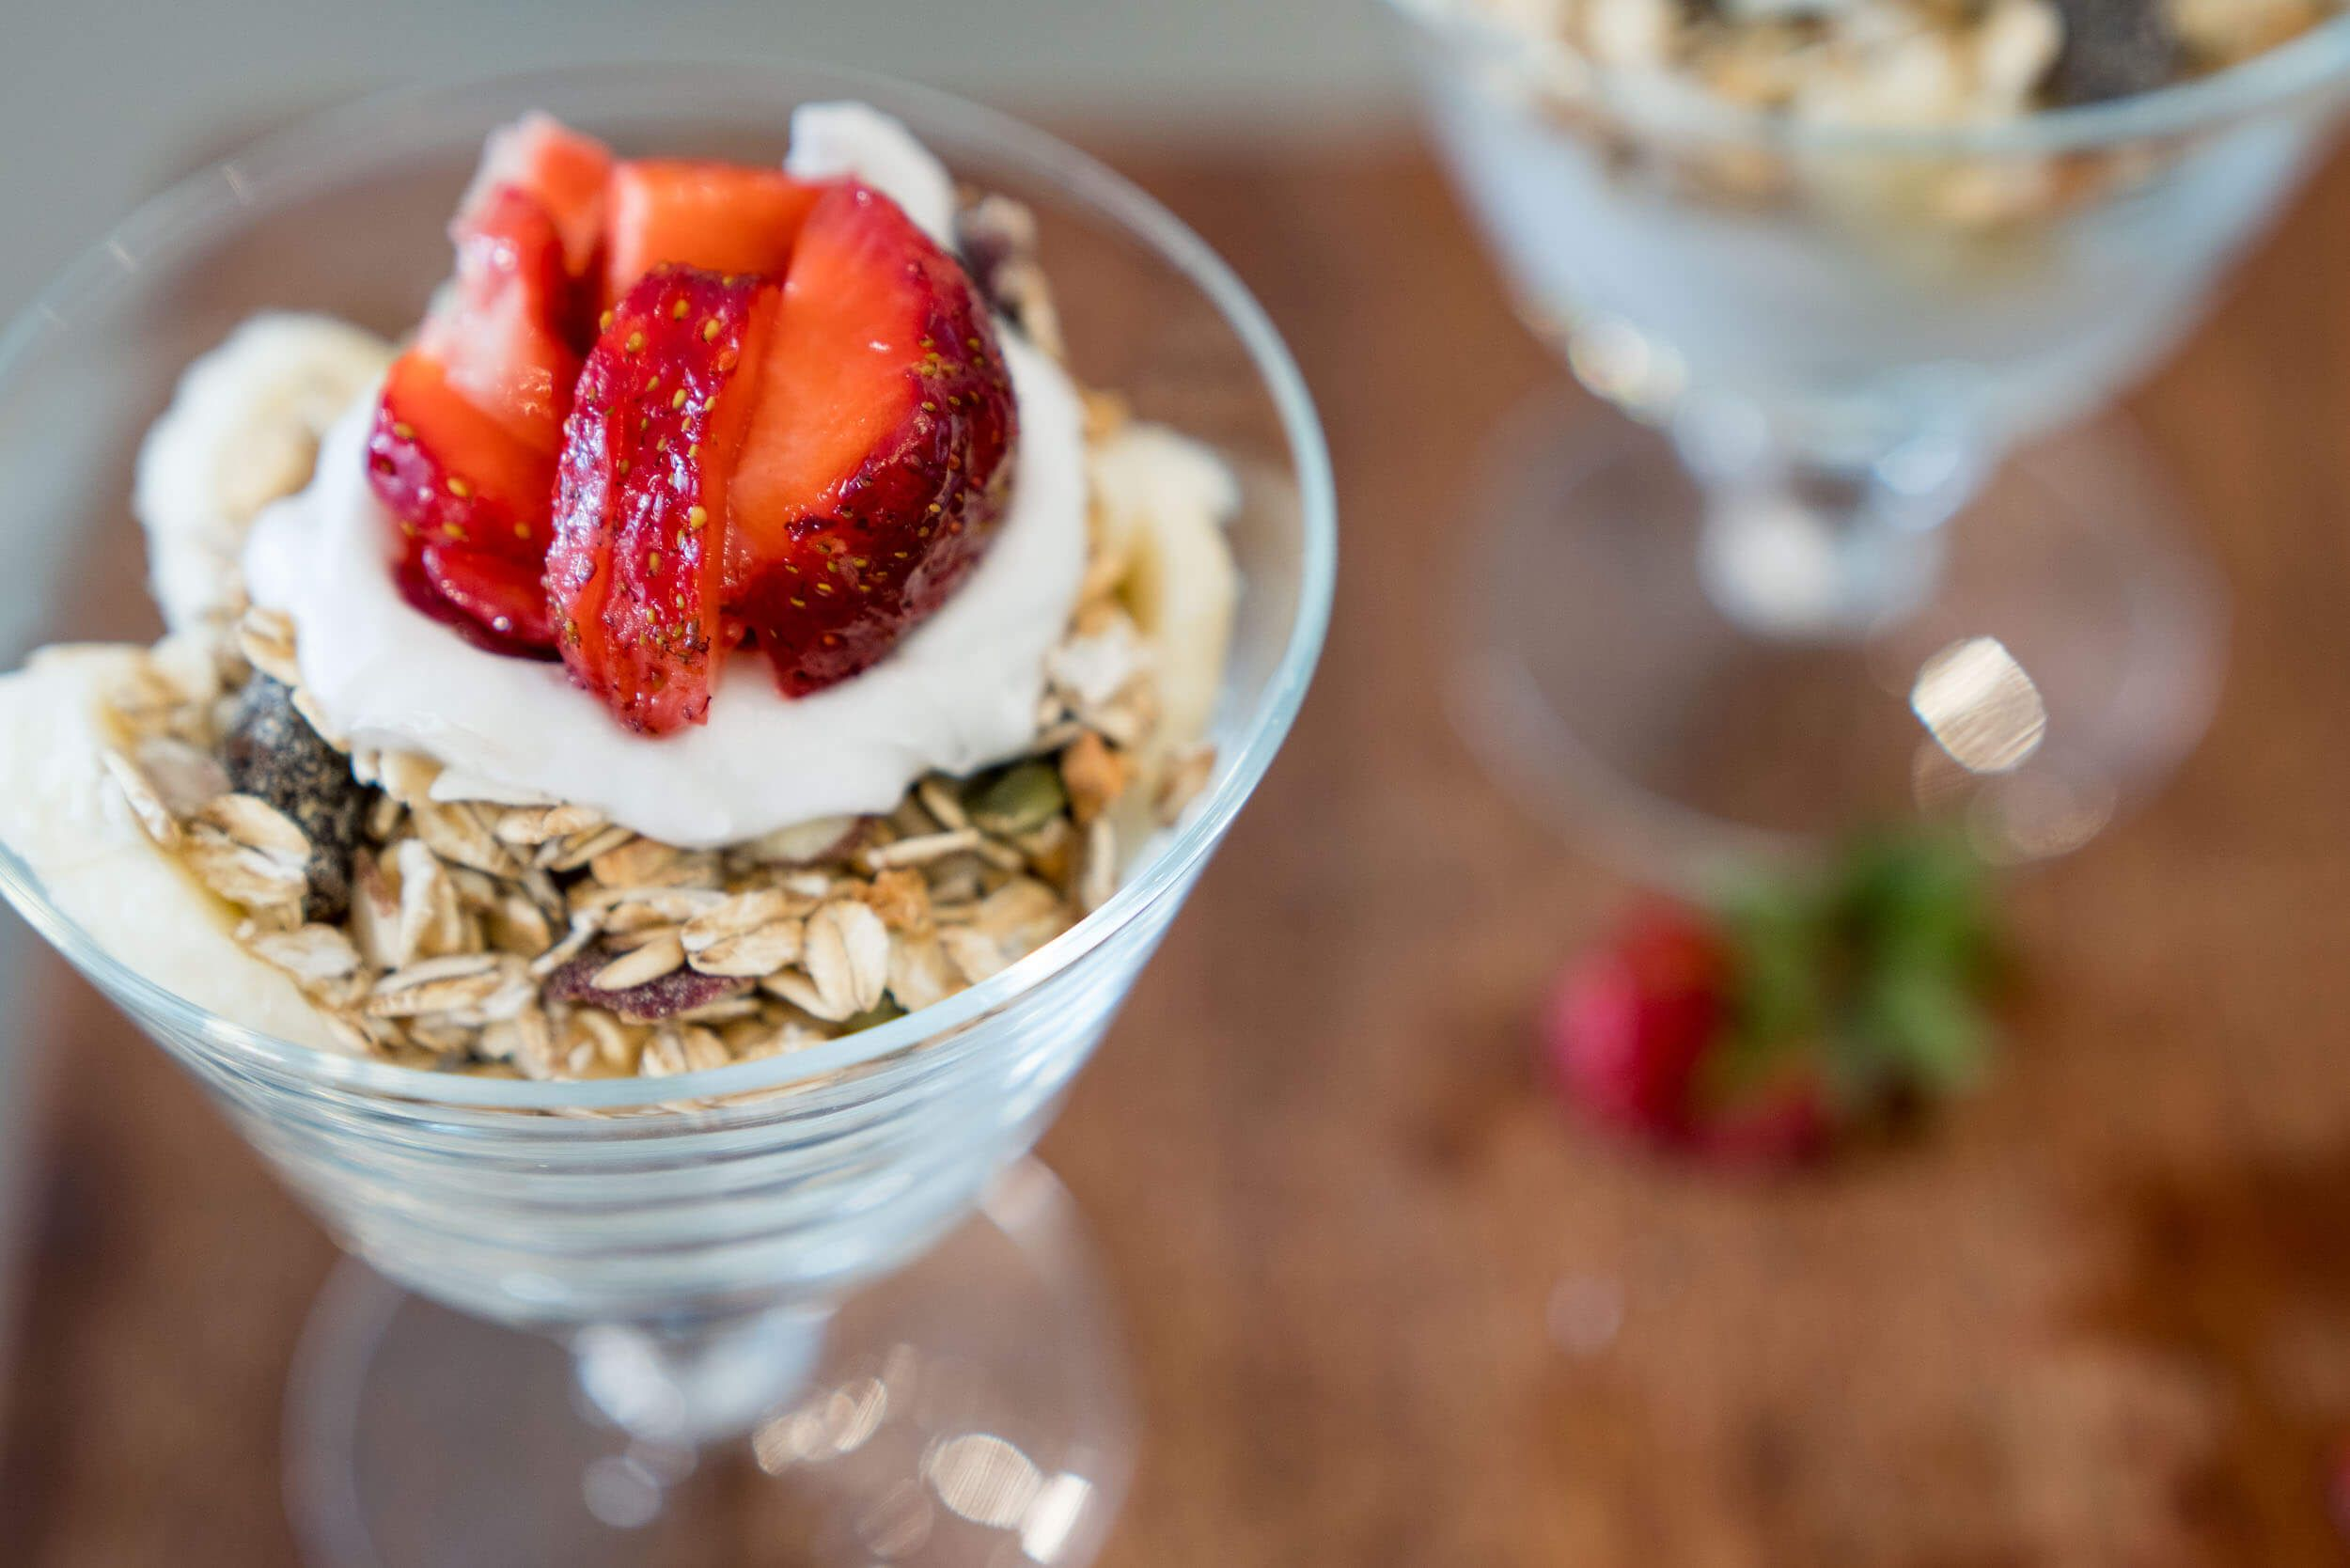 Have you ever made your own coconut milk yogurt? This